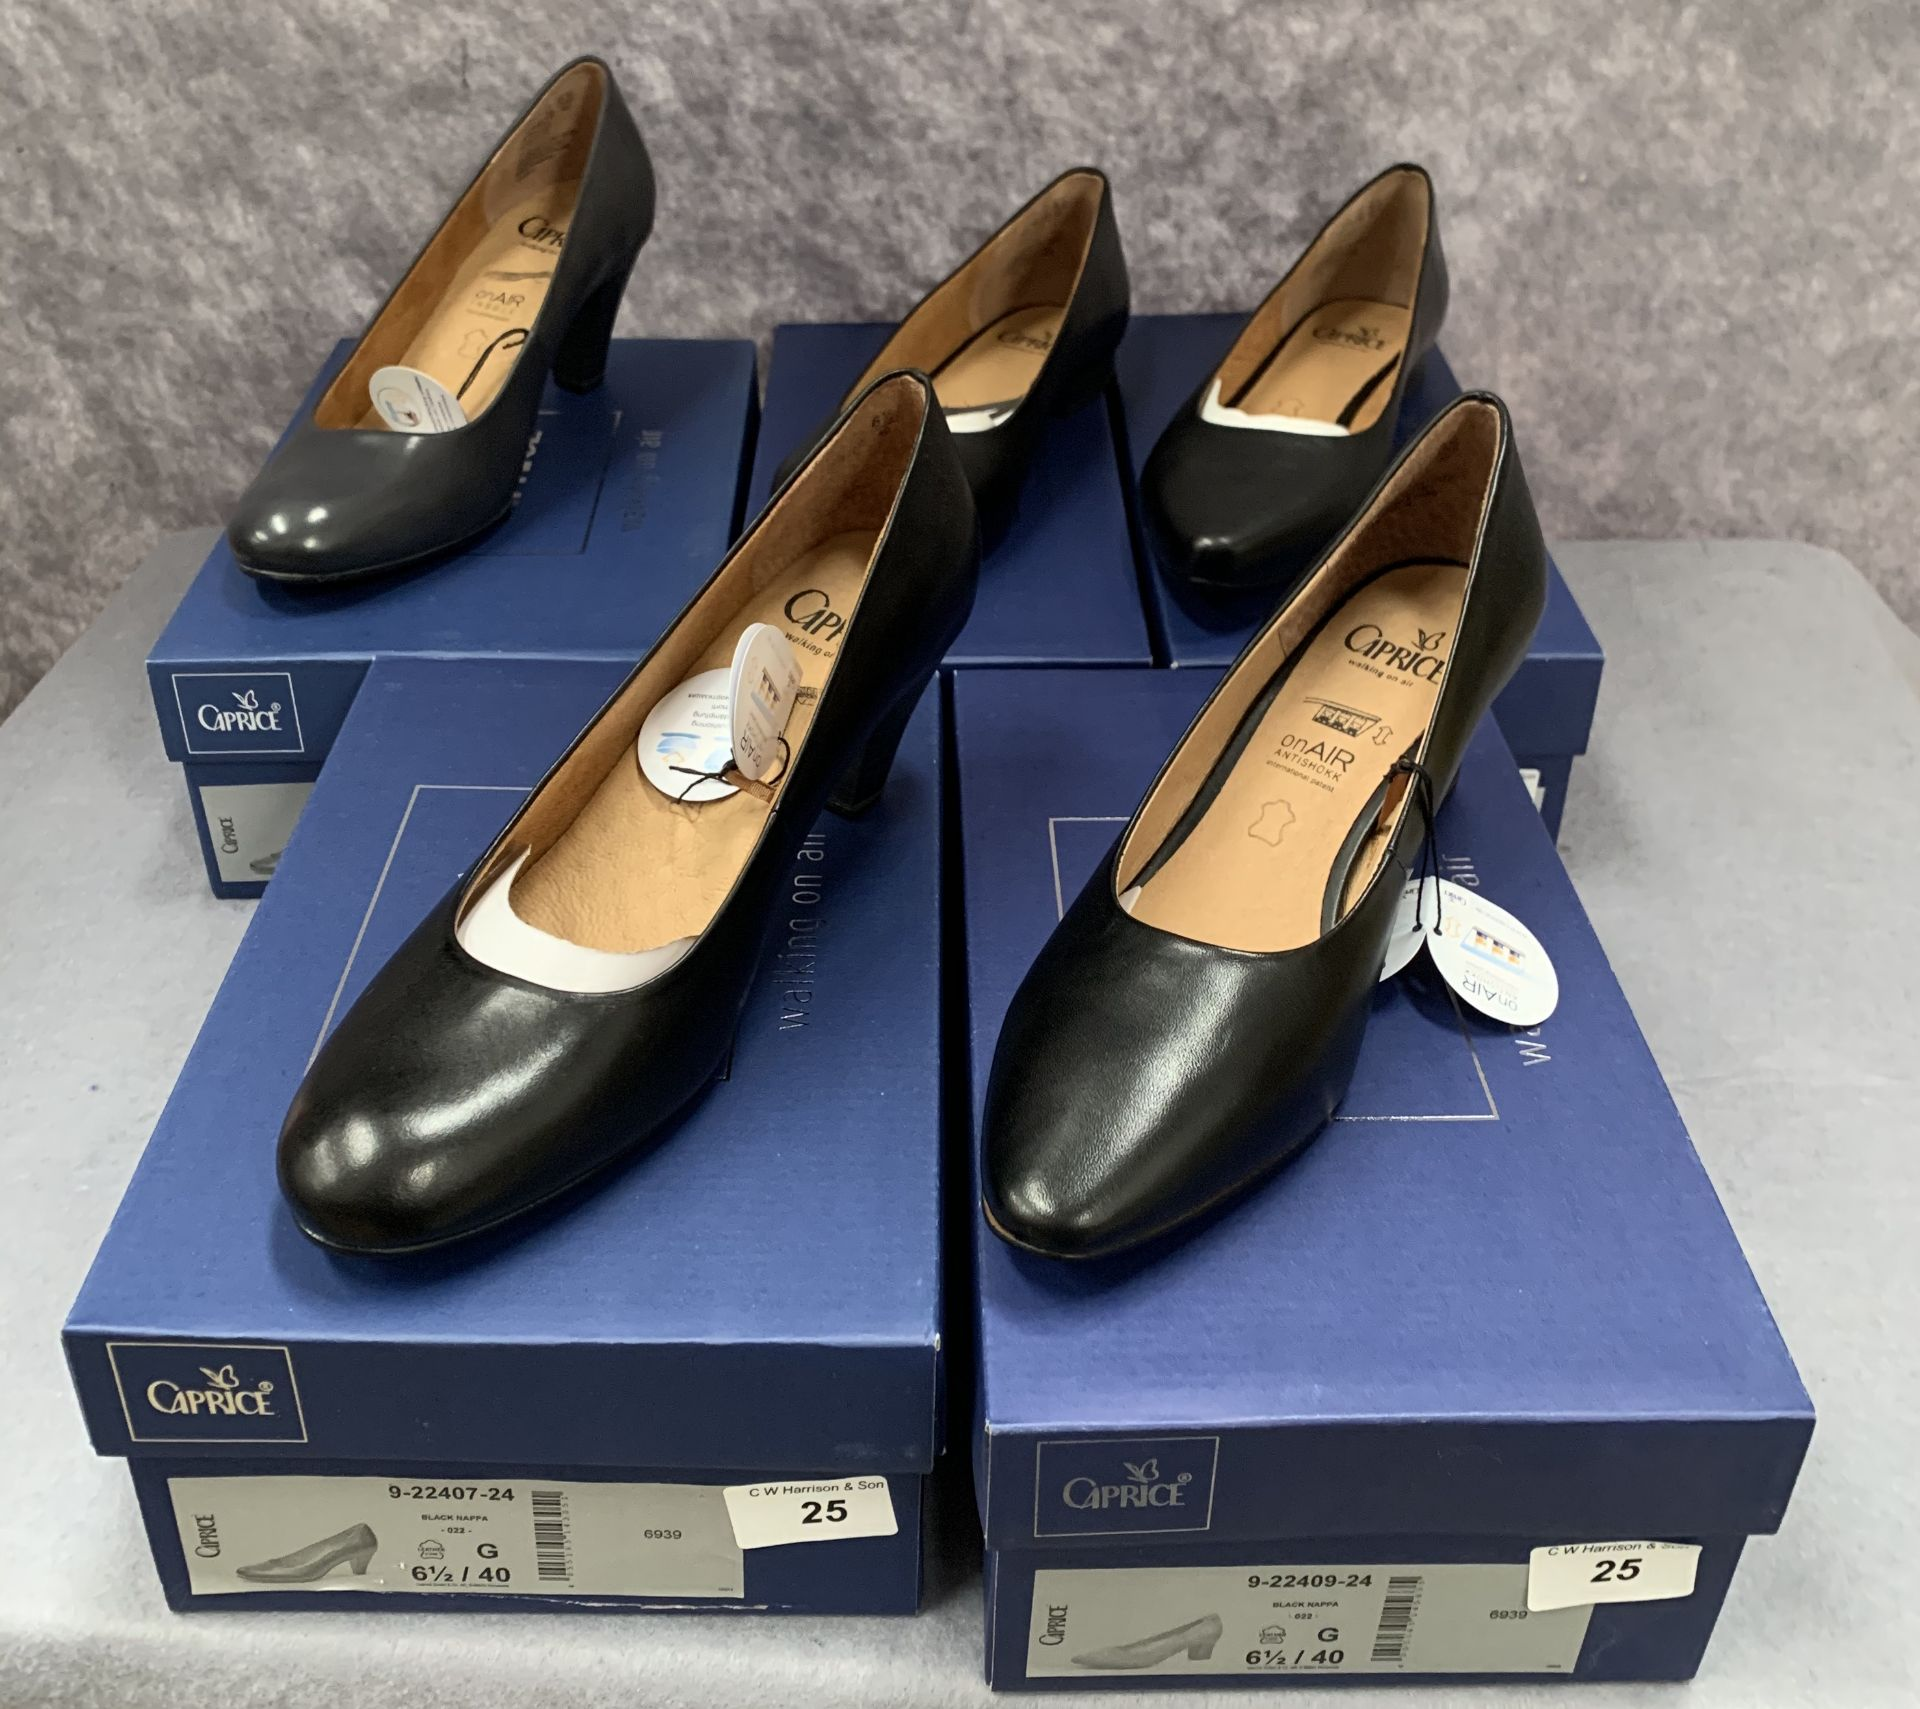 Lot 25 - Five pairs of Caprice ladies shoes in black (4) and navy (1), various styles, size 6½,